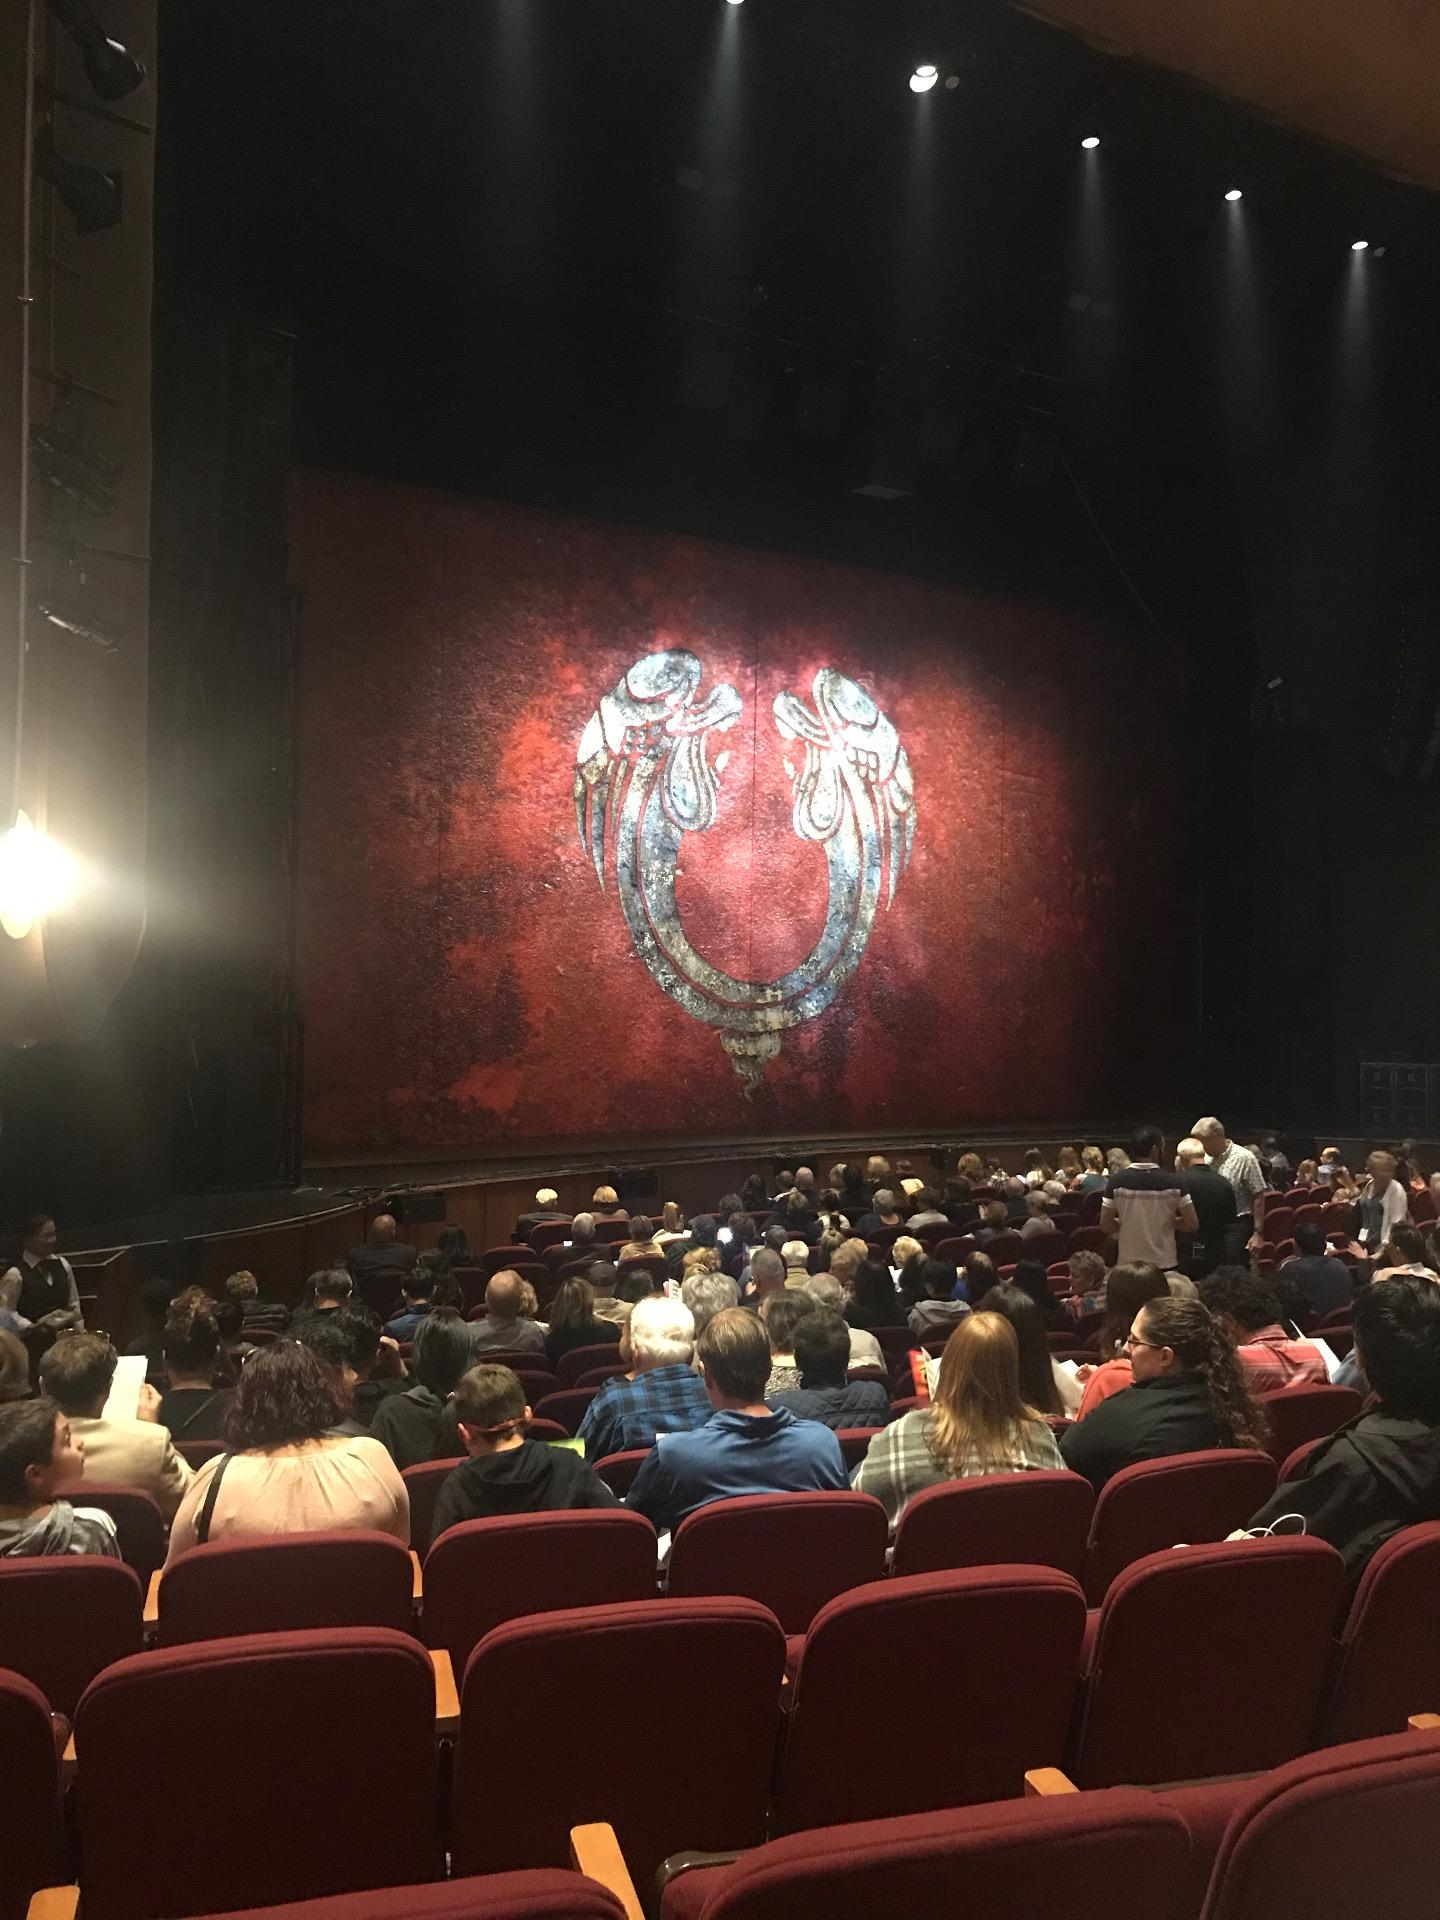 San Jose Center For The Performing Arts Section ORCL Row 13 Seat 48